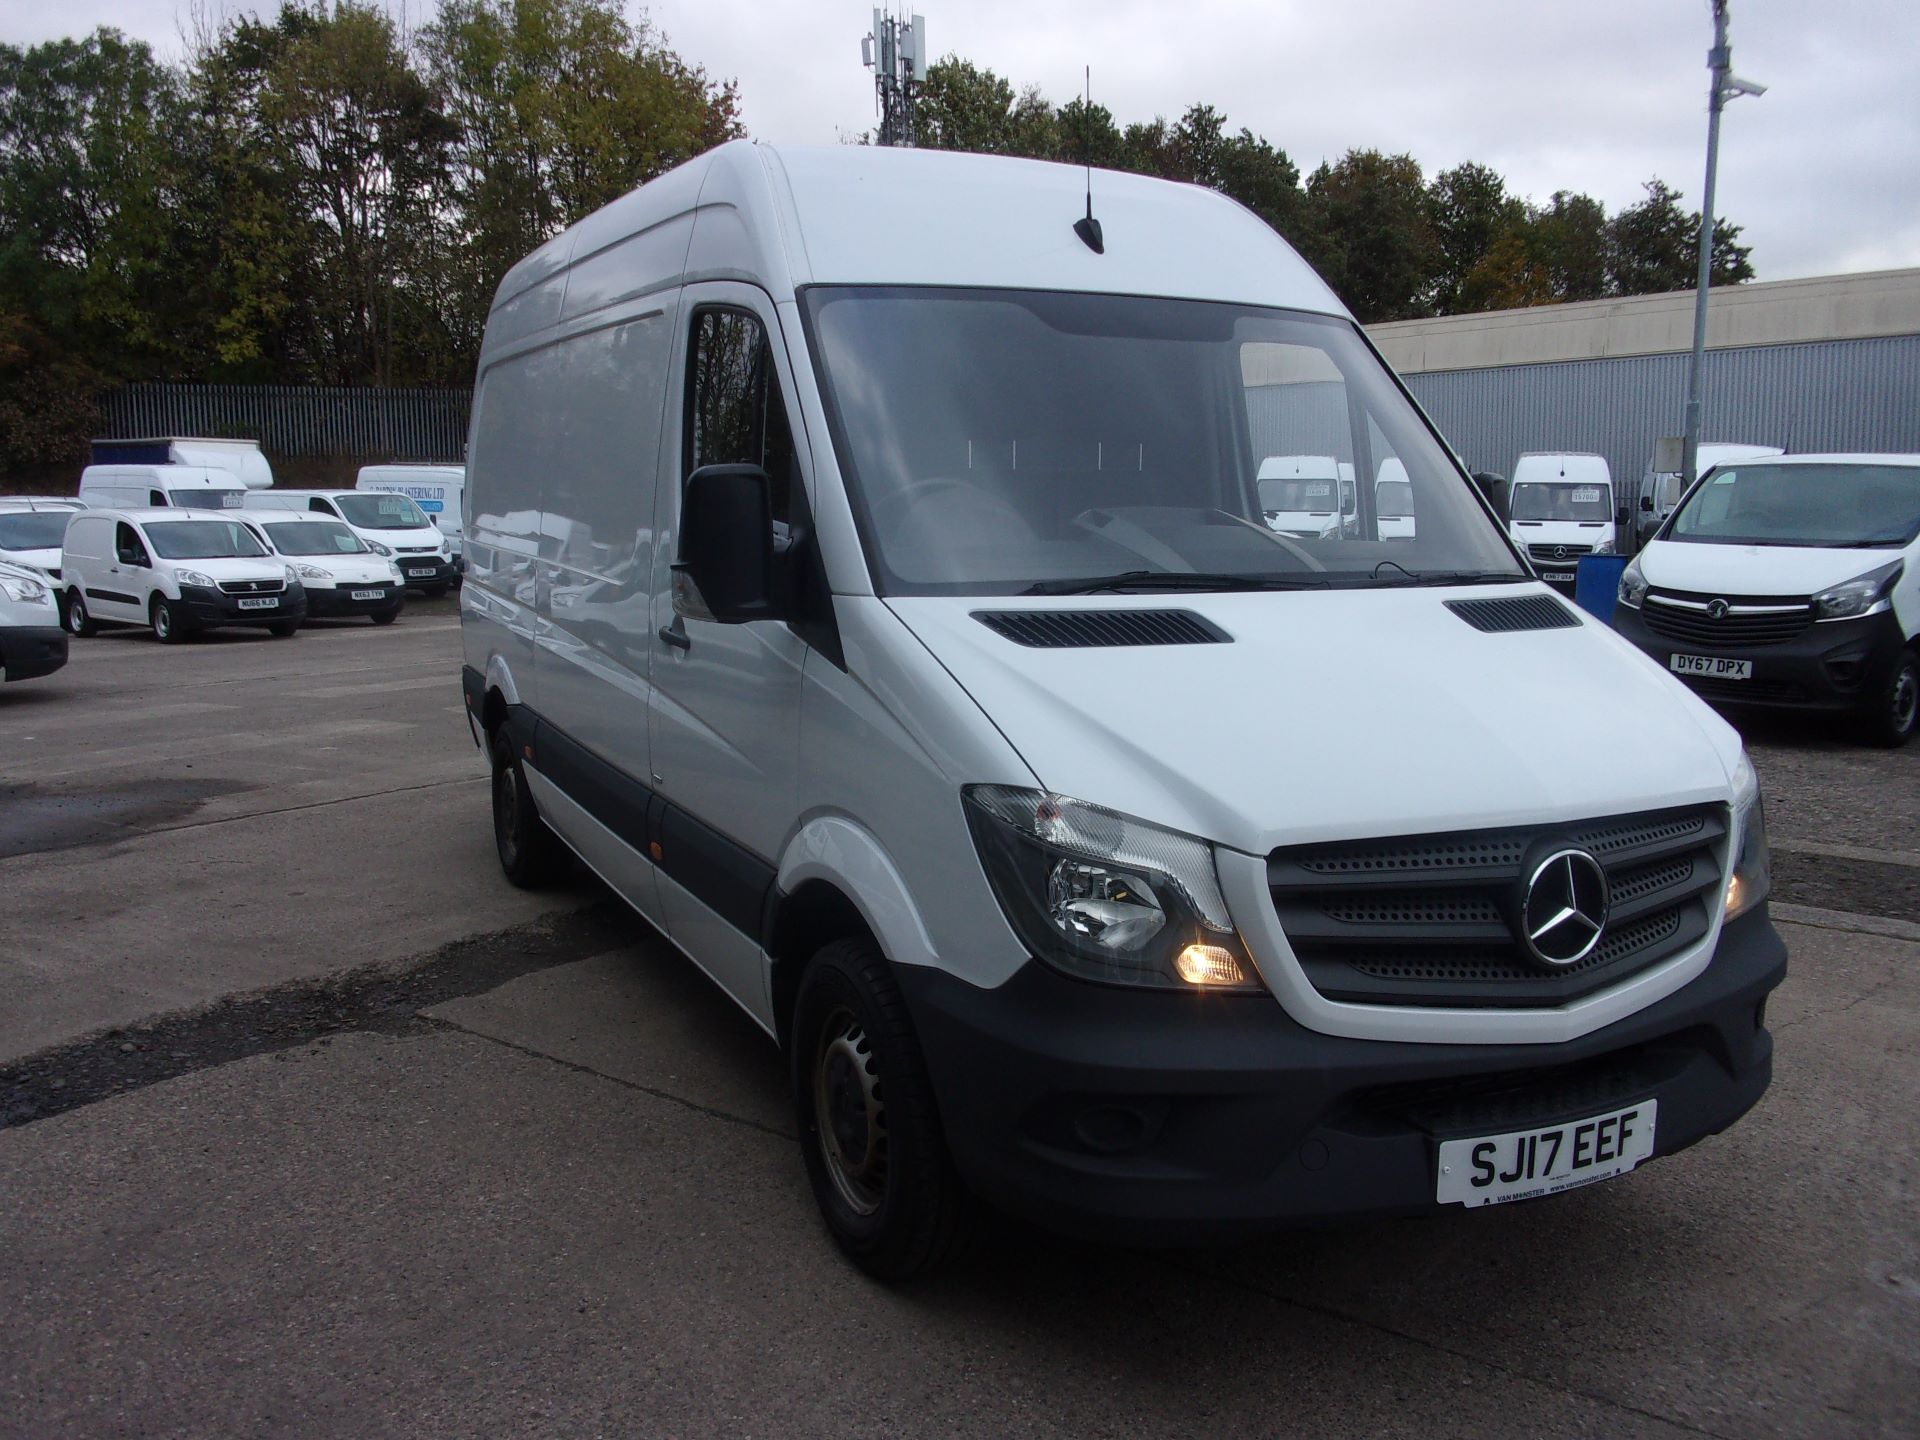 2017 Mercedes-Benz Sprinter 314 CDI MWB HIGH ROOF EURO 6 (SJ17EEF) Image 1